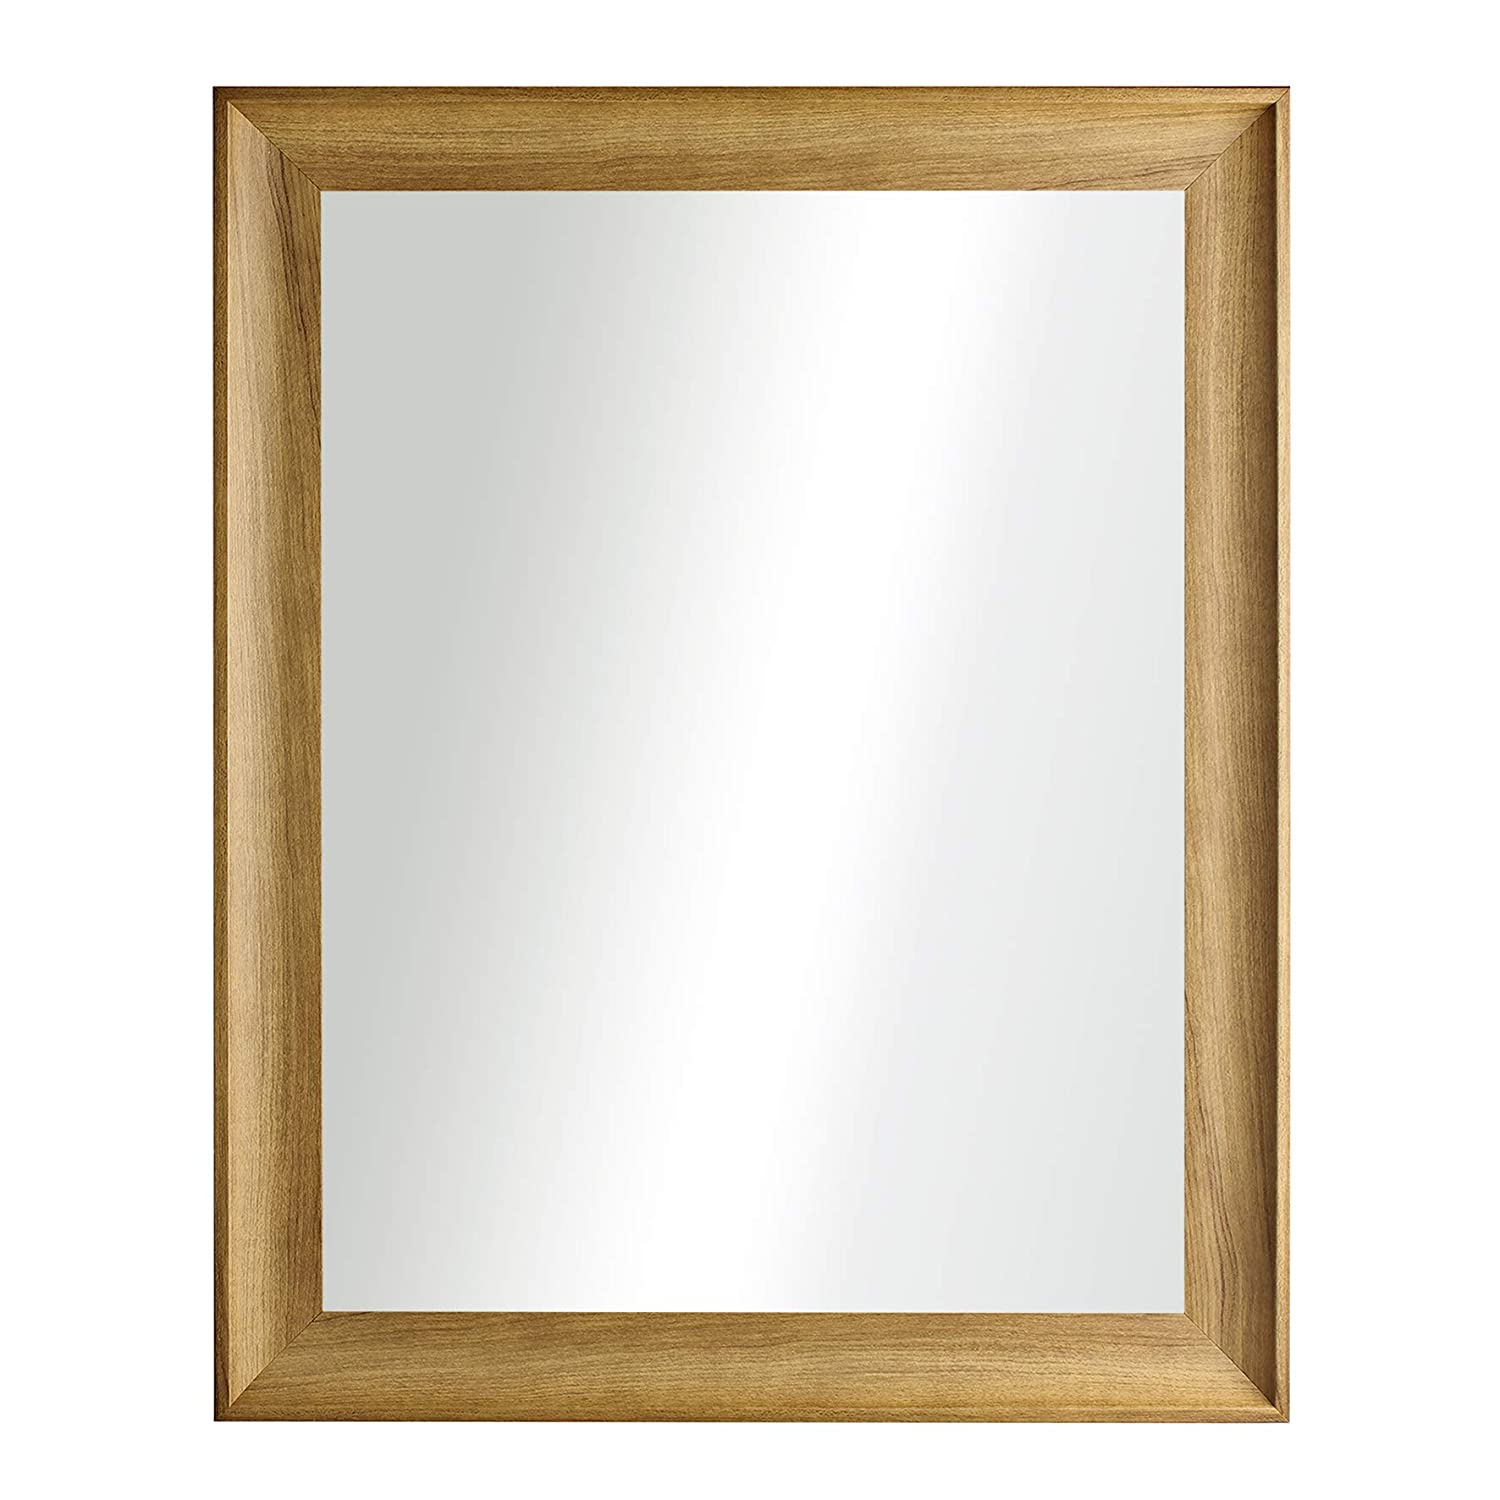 Decorative Table Top Mirrors.Mirror Trend 15 X 12 Vanity Mirror For Wall And Rectangle Tabletop Mirrors For Bathroom Women And Girls Makeup Mirror Decorative Wall Mirrors